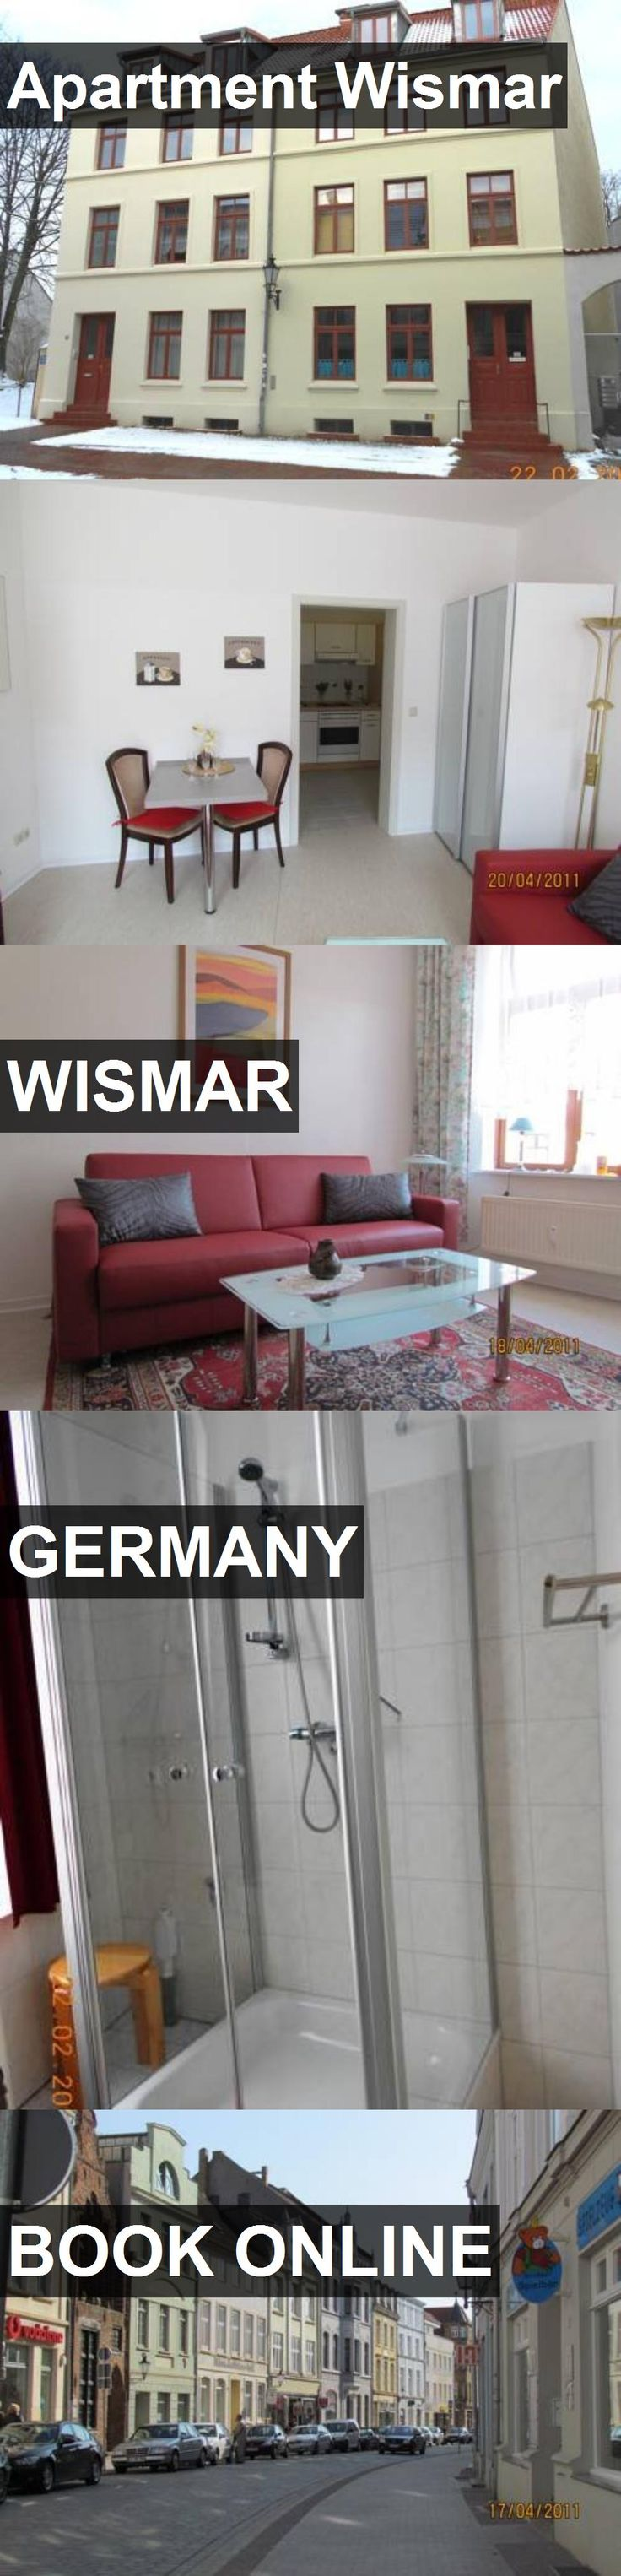 Apartment Wismar in Wismar, Germany. For more information, photos, reviews and best prices please follow the link. #Germany #Wismar #travel #vacation #apartment